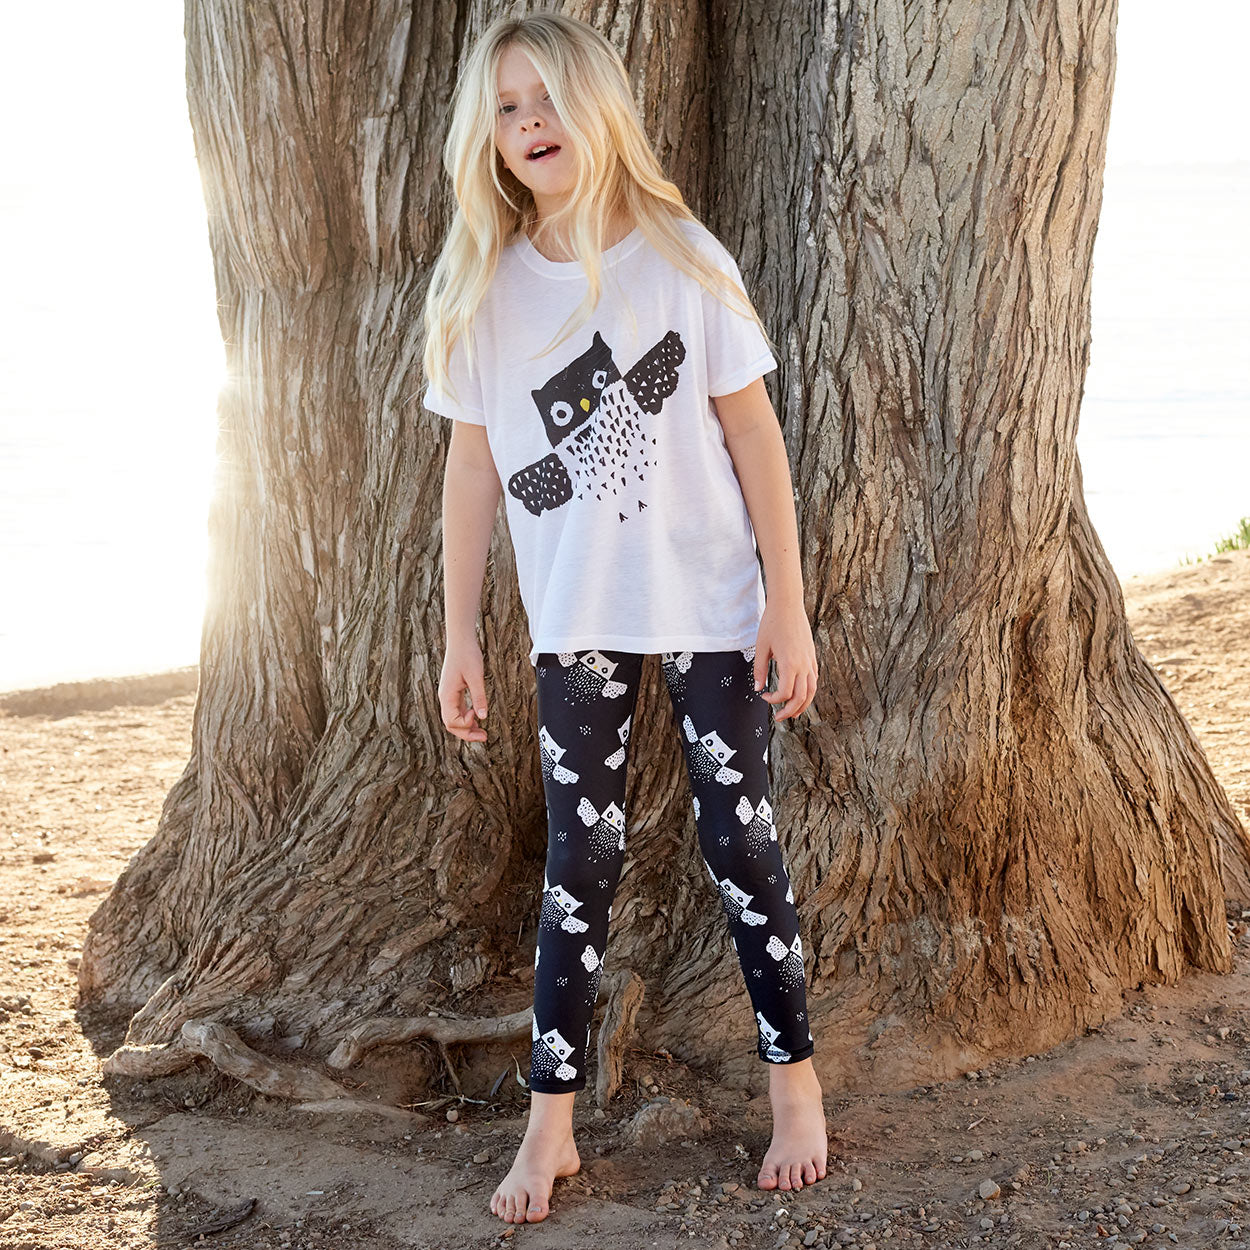 Owls Sunblock Youth Leggings Upf50 Girls Size 6 12 Black _ White Girl Checking The Surf At The Beach Sunpoplife